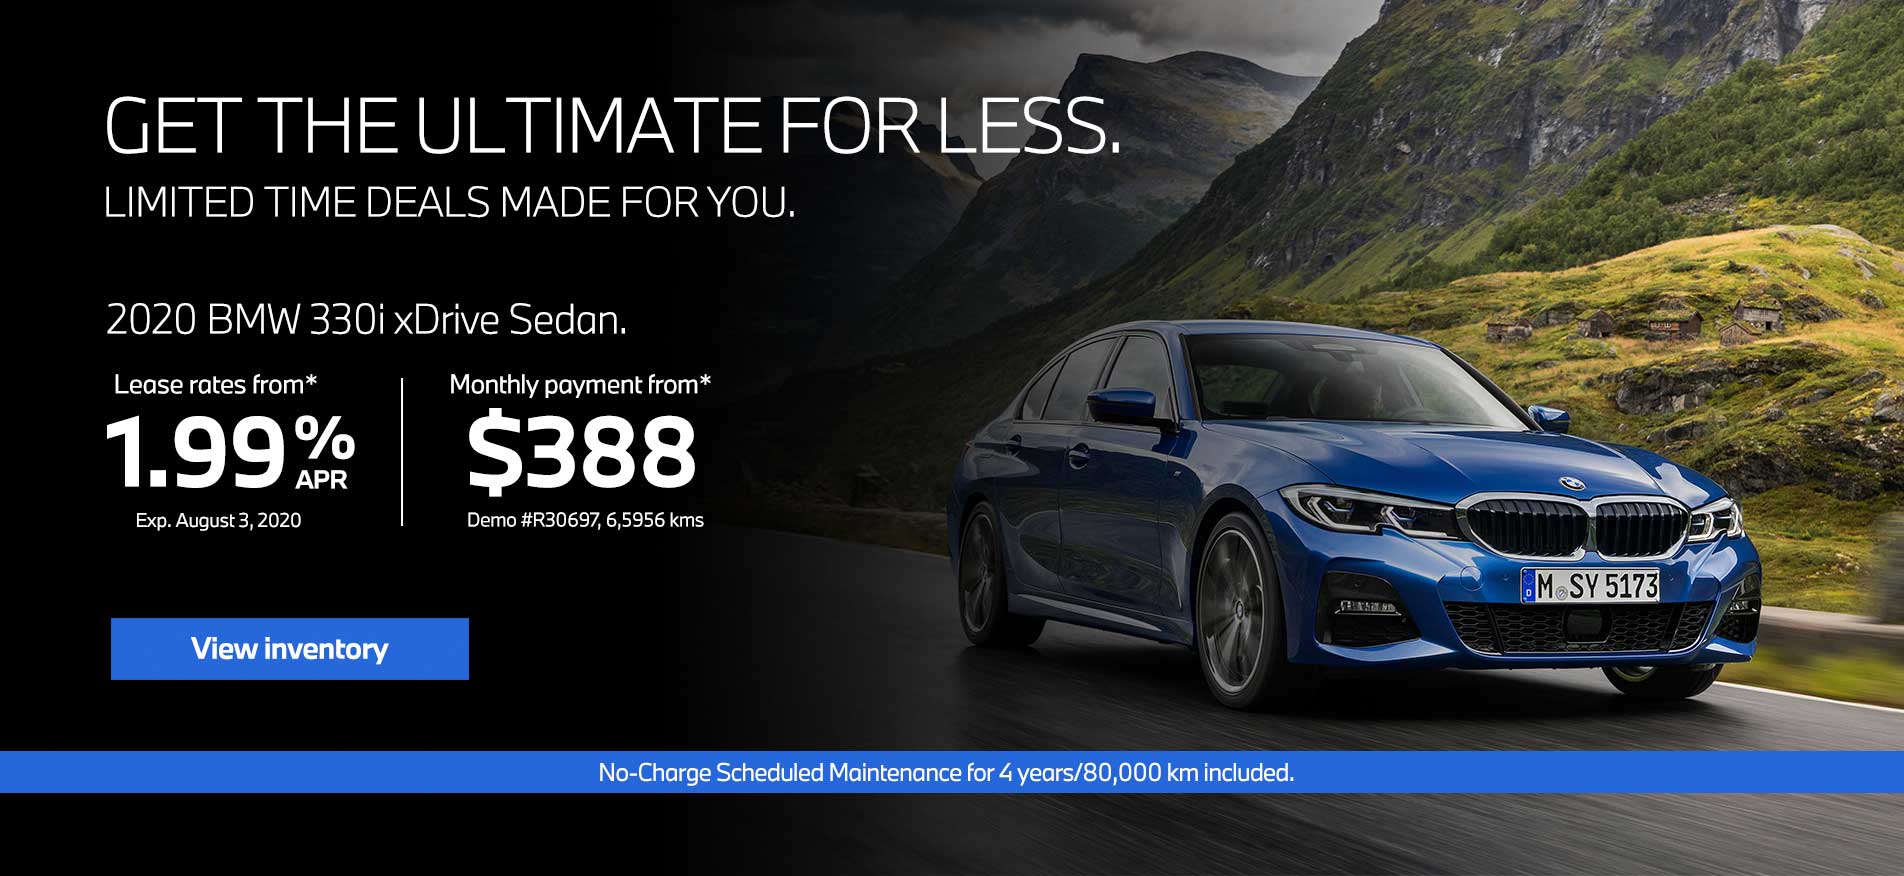 Auto West BMW July Offers 3 Series